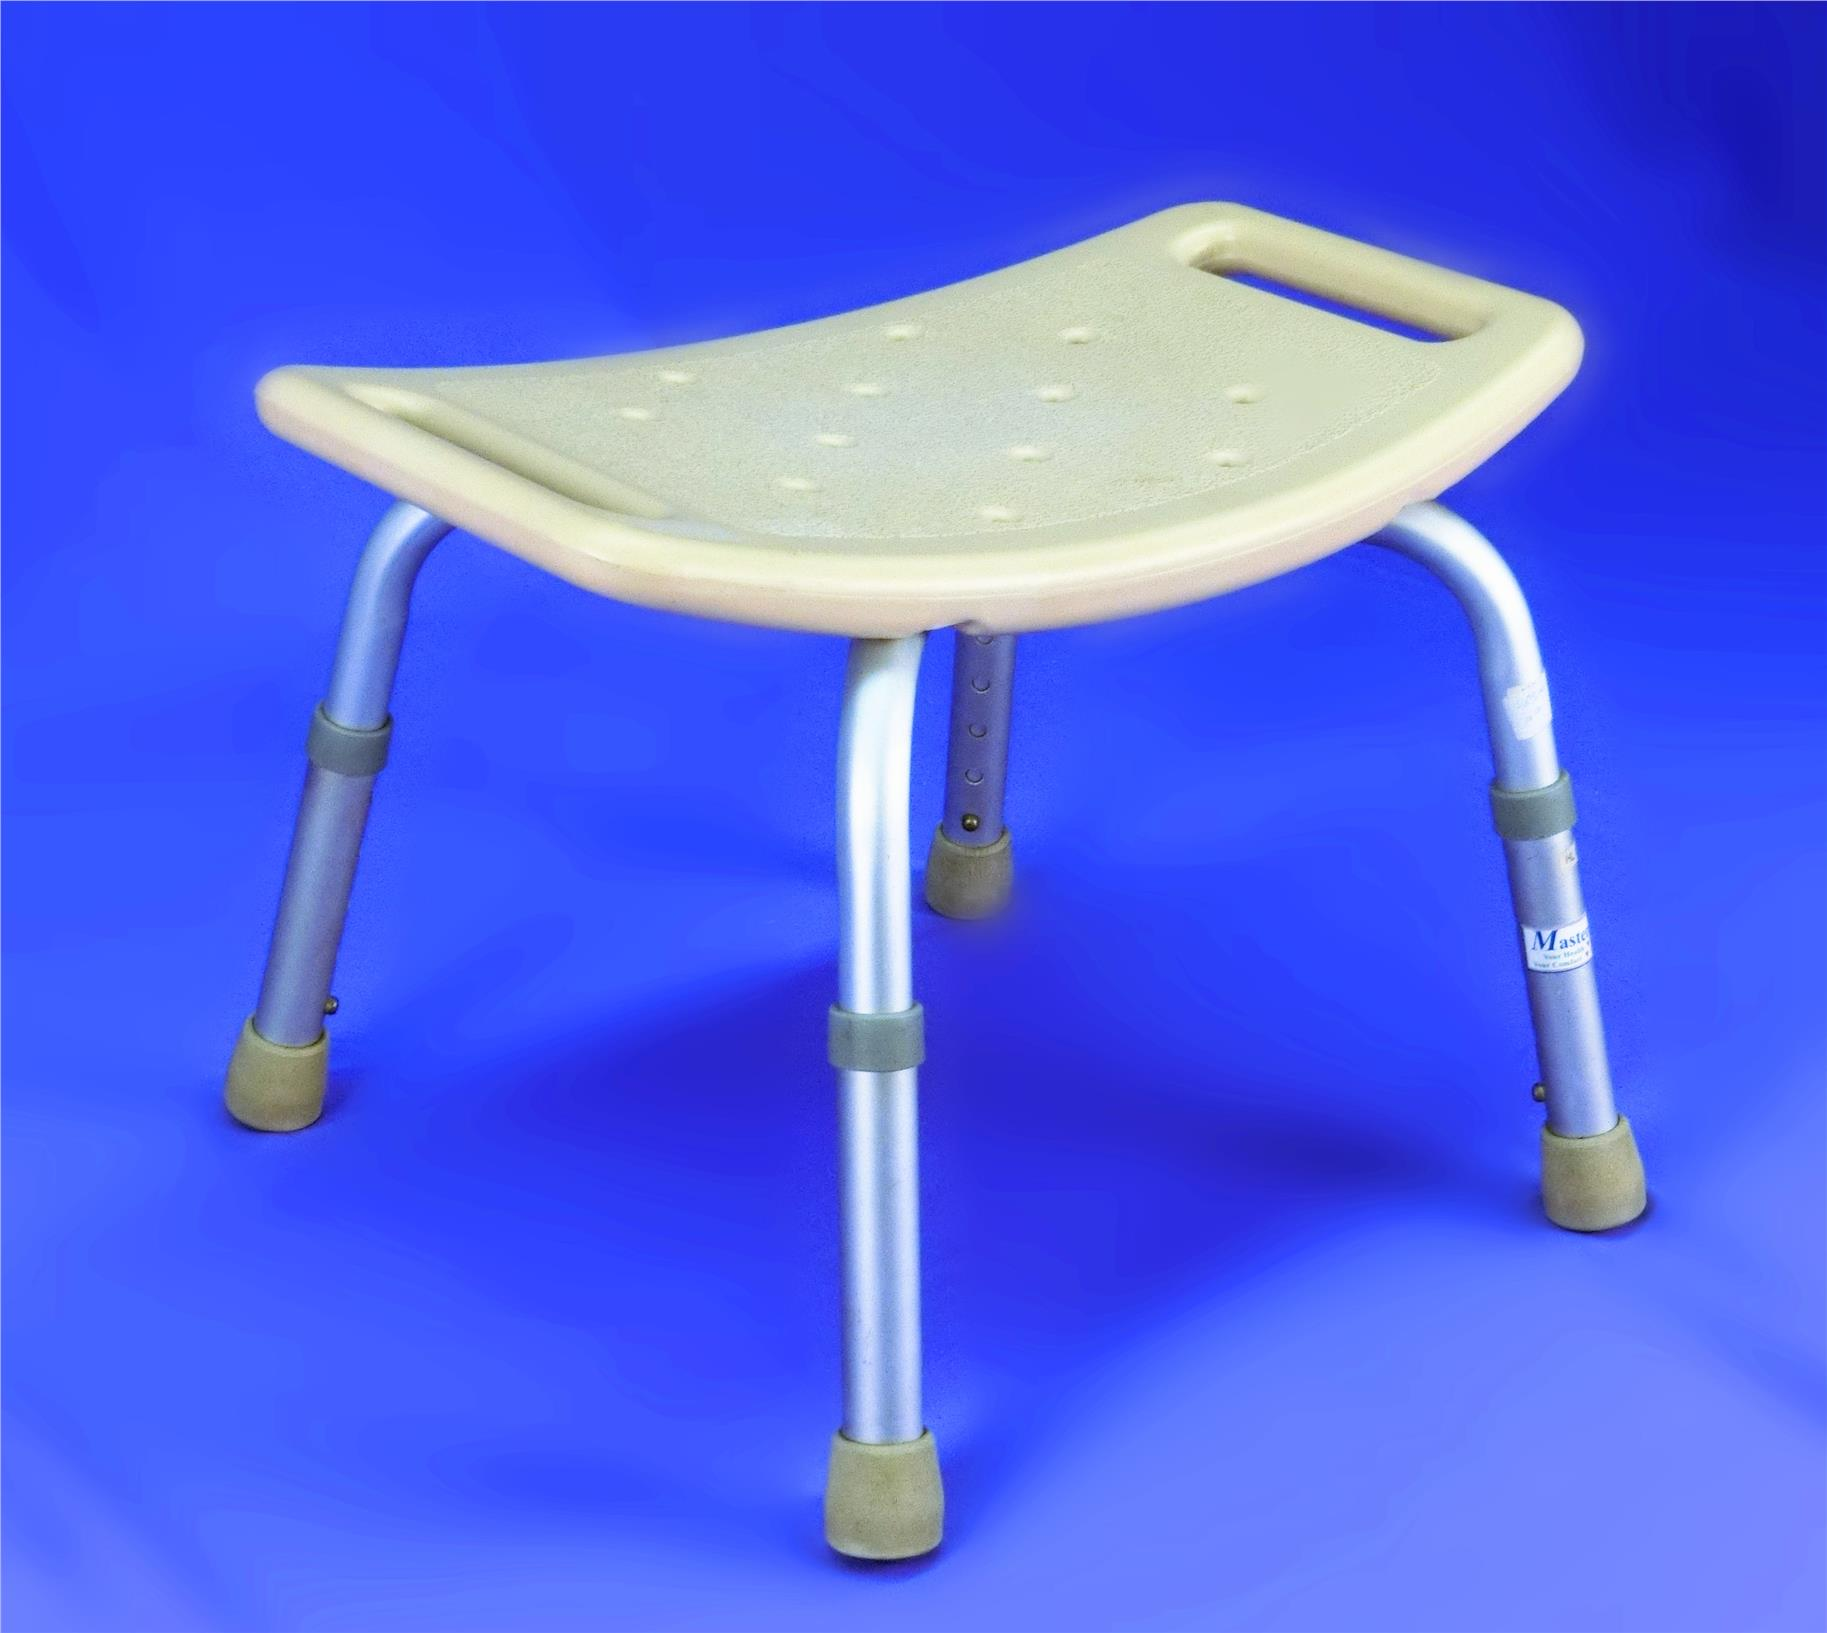 shower chair malaysia and a half chaise without backrest end 8 23 2017 3 15 am myt